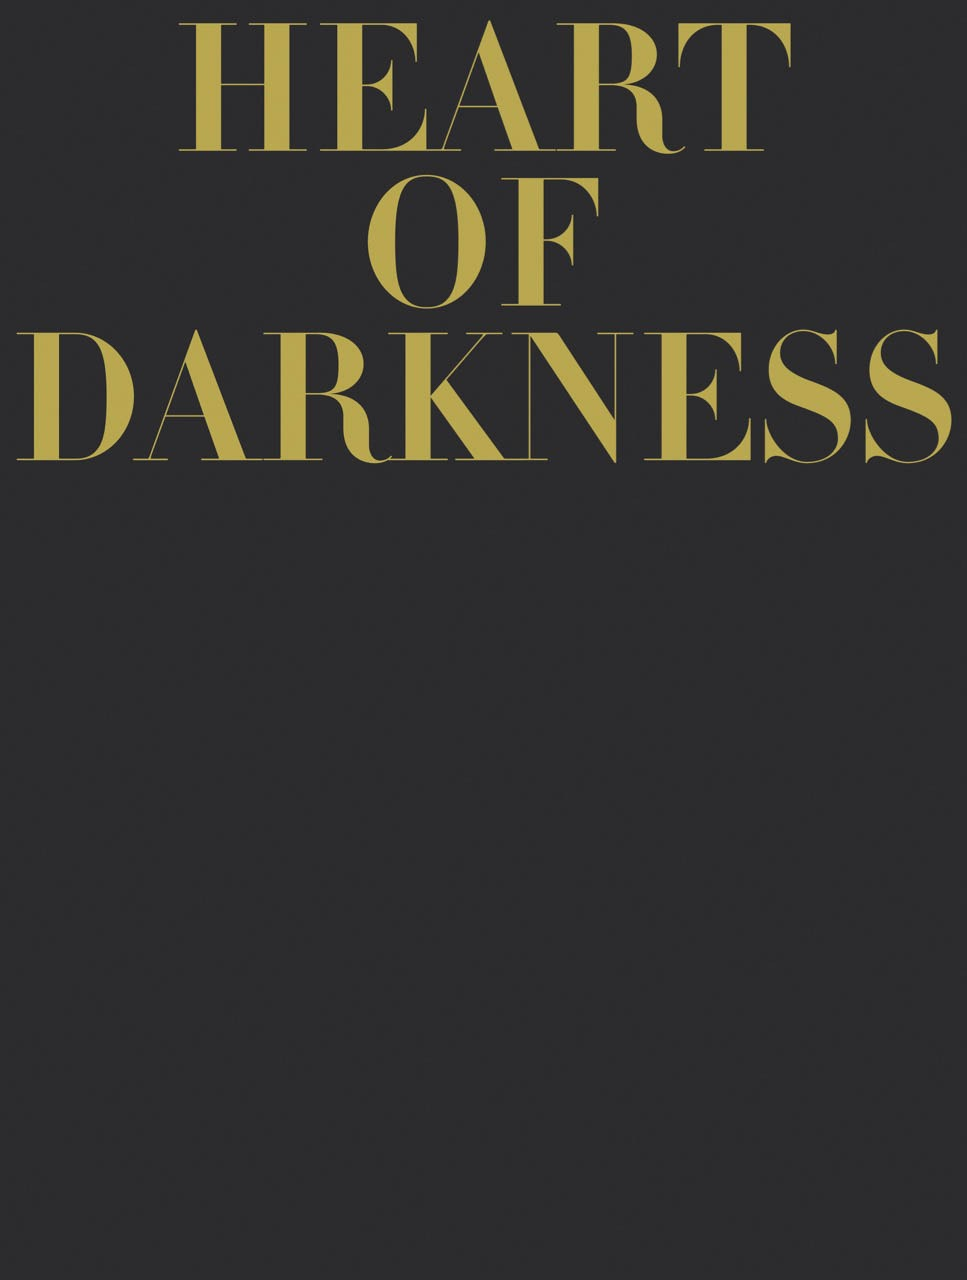 FourCornersBooks-HeartofDarkness-cover-9781909829053